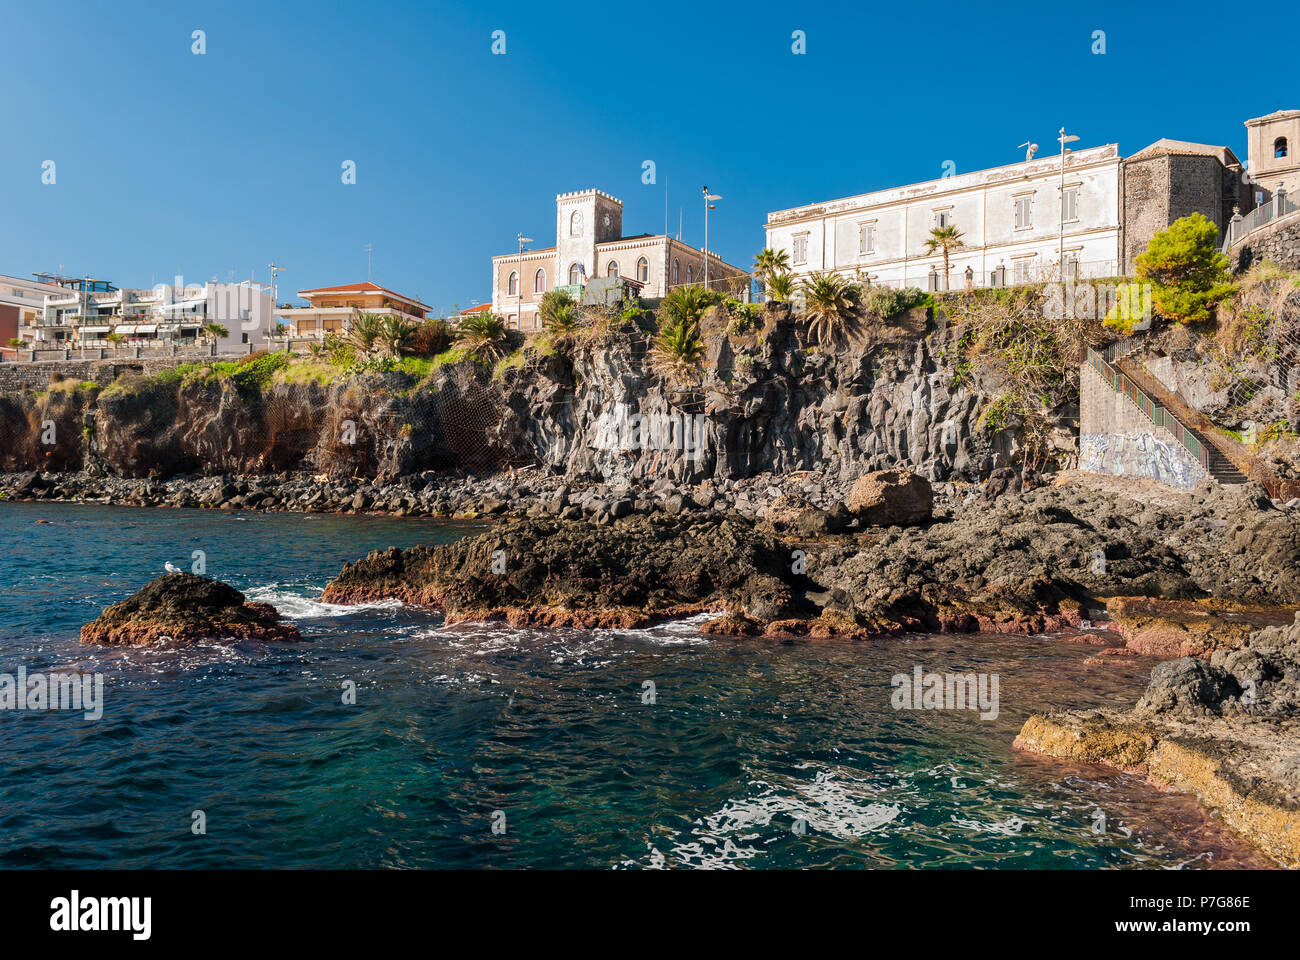 Rocky coastline with typical pillows lava in the town of Aci Castello, in Sicily - Stock Image